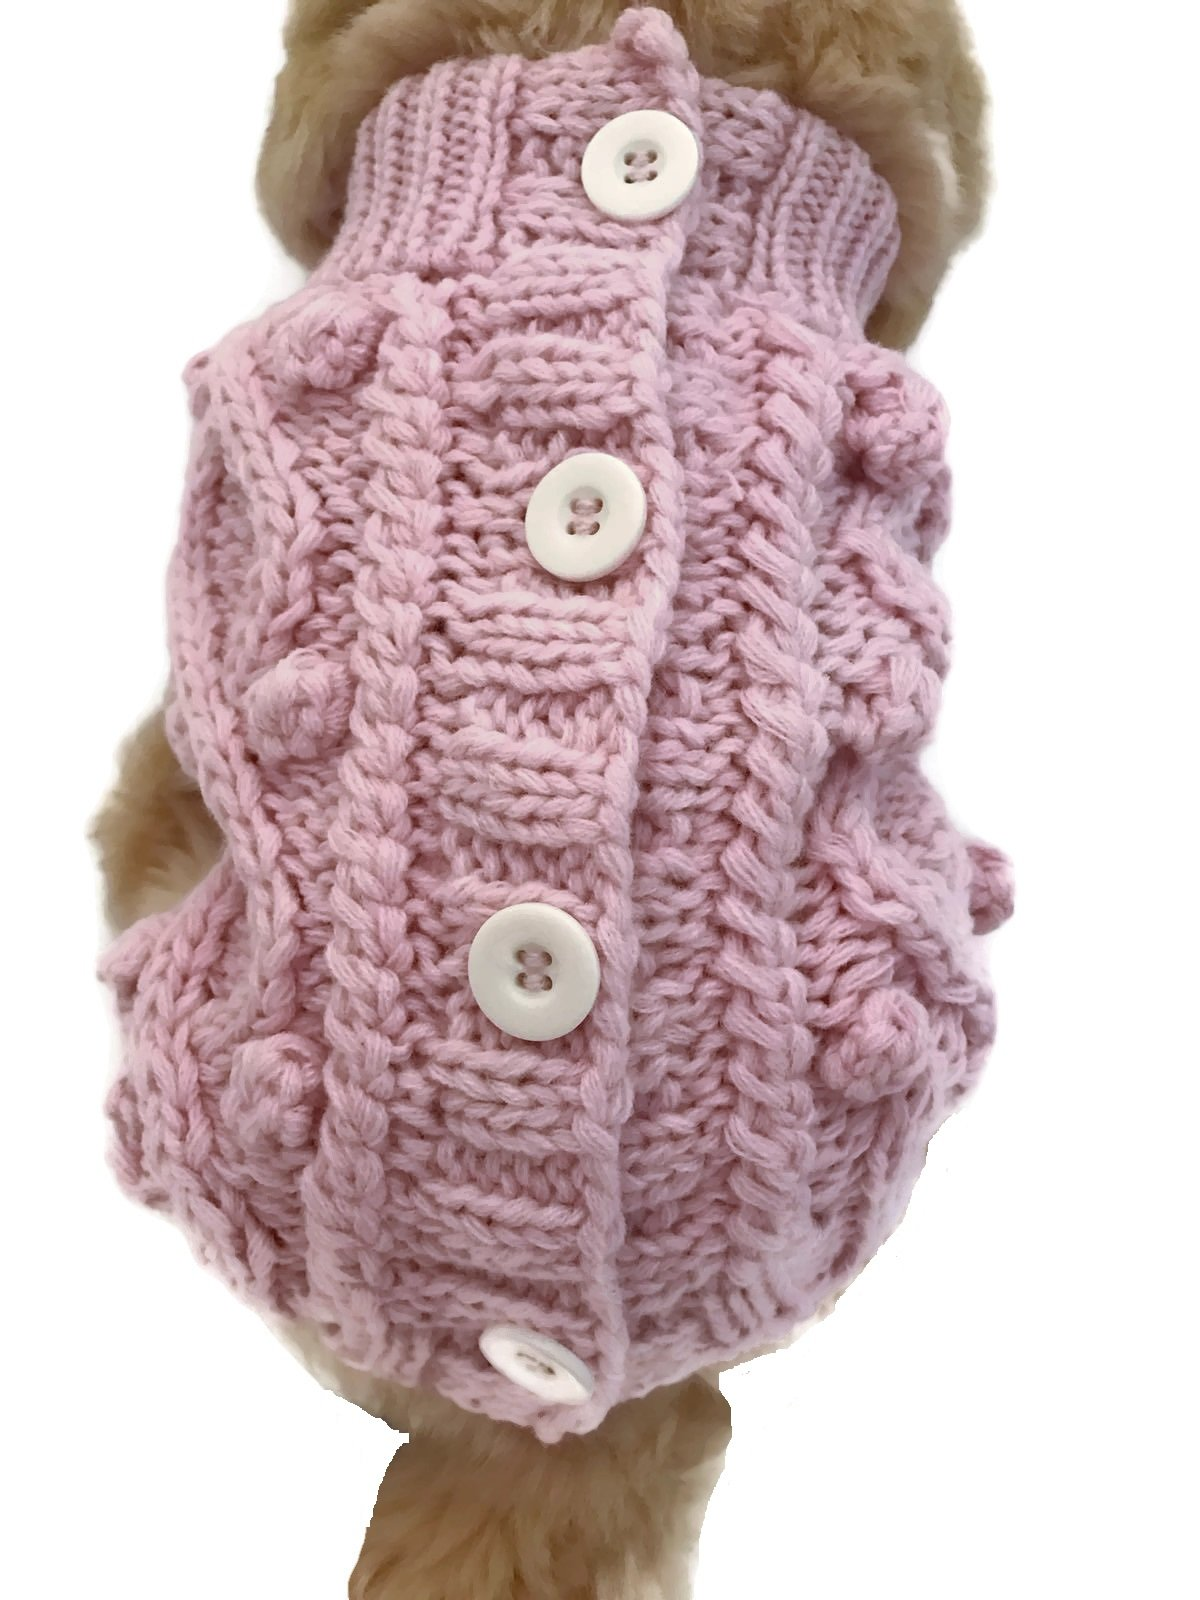 Le Petit Chien Handmade Knitwear Soft Sweater for Small Dogs or Puppies (Small, Pink)